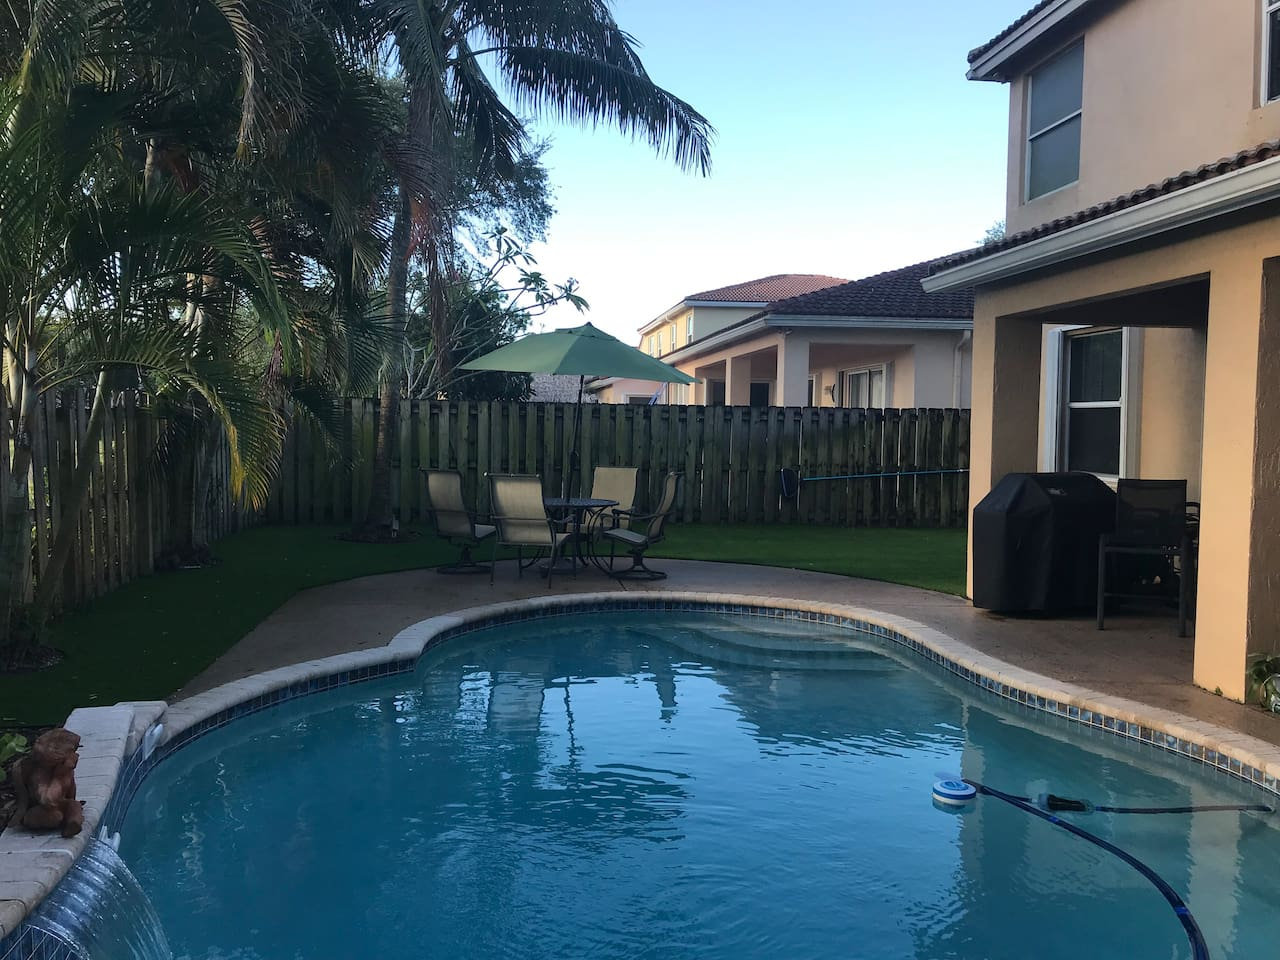 Enjoy your SoFlo stay with some quiet moments in the back yard, where you can take a dip in the pool, grill dinner and enjoy a meal and beverage on the back patio.